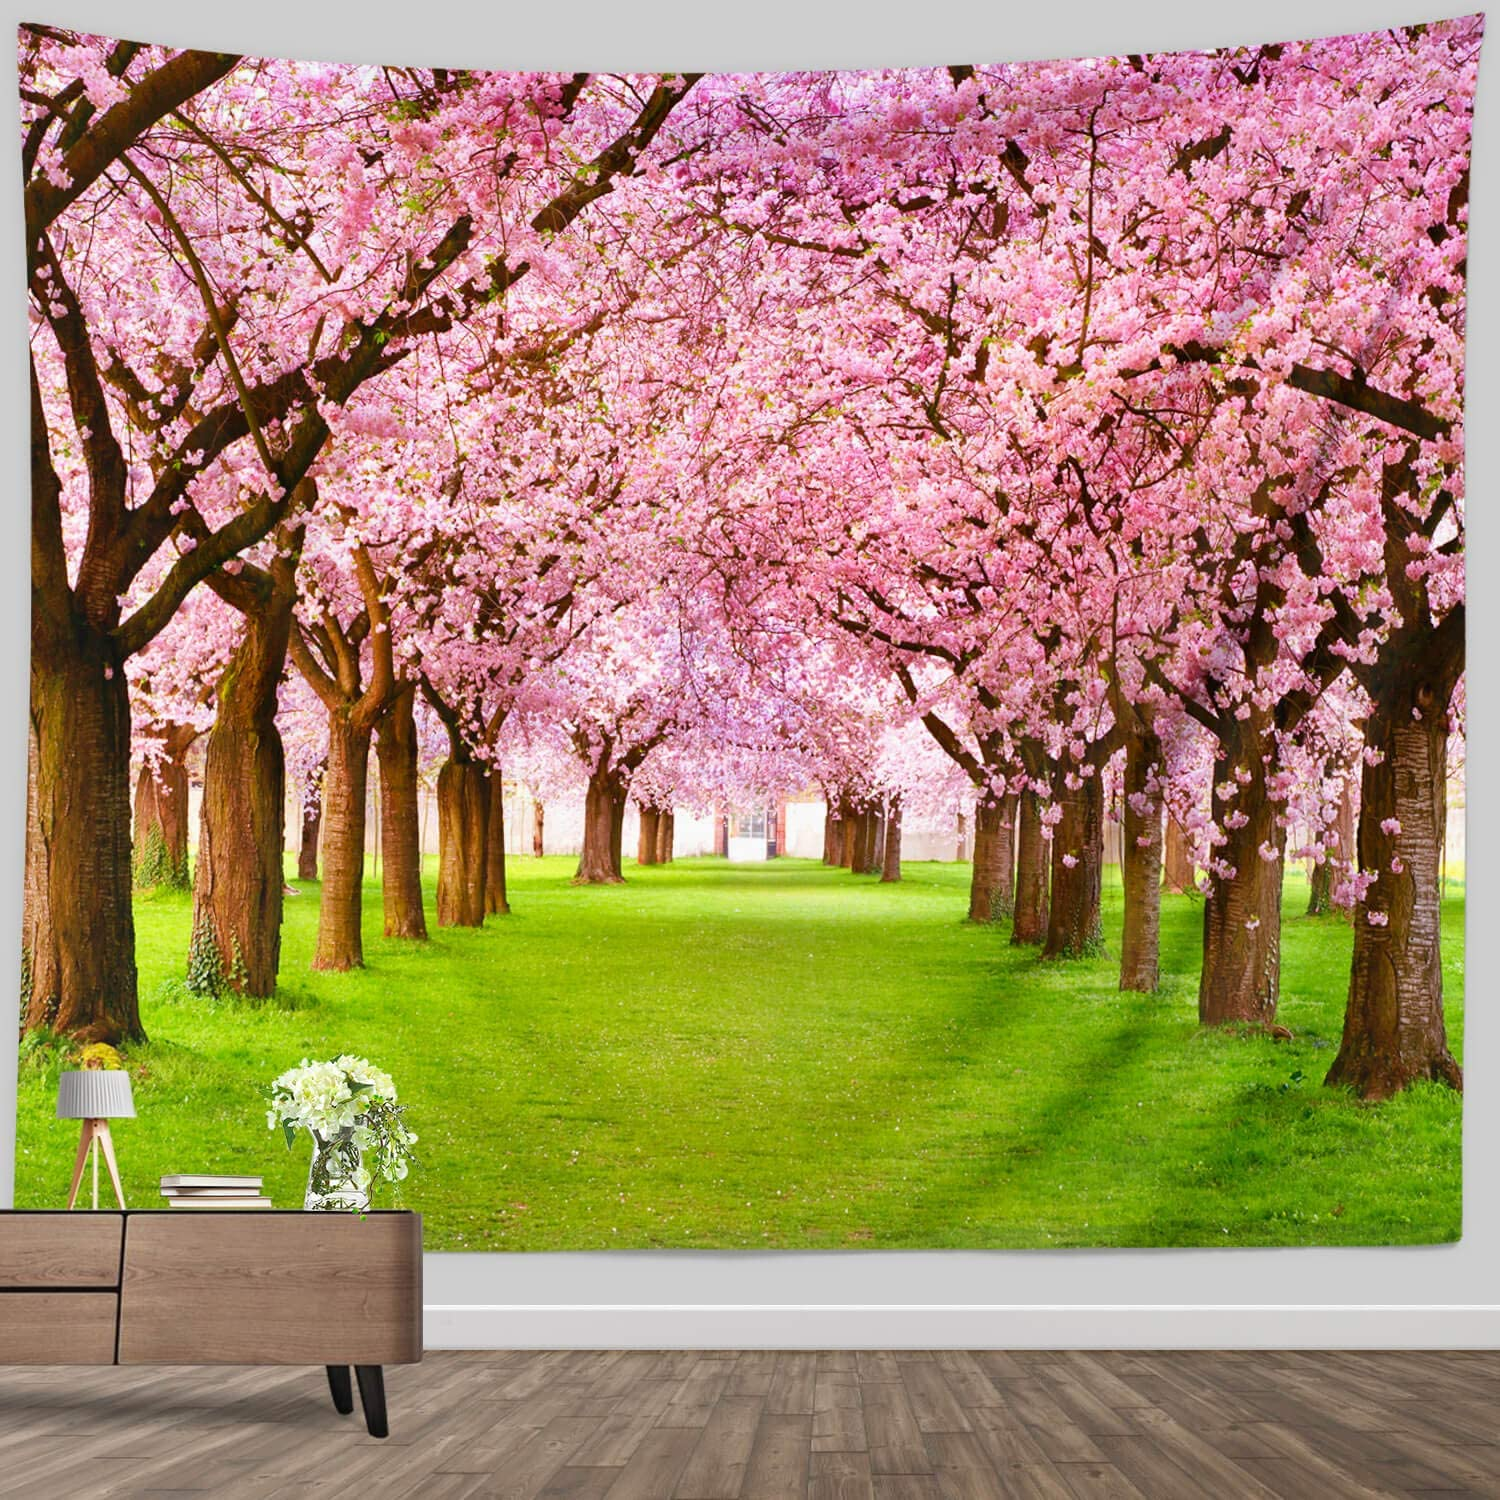 Wall Tapestry Spring Flowers, Cherry Flower Tree Woodland Grasses Plants Garden Scene Wall Art Tapestry Natural Wall Hanging for Bedroom Living Room Wall Decor Blanket